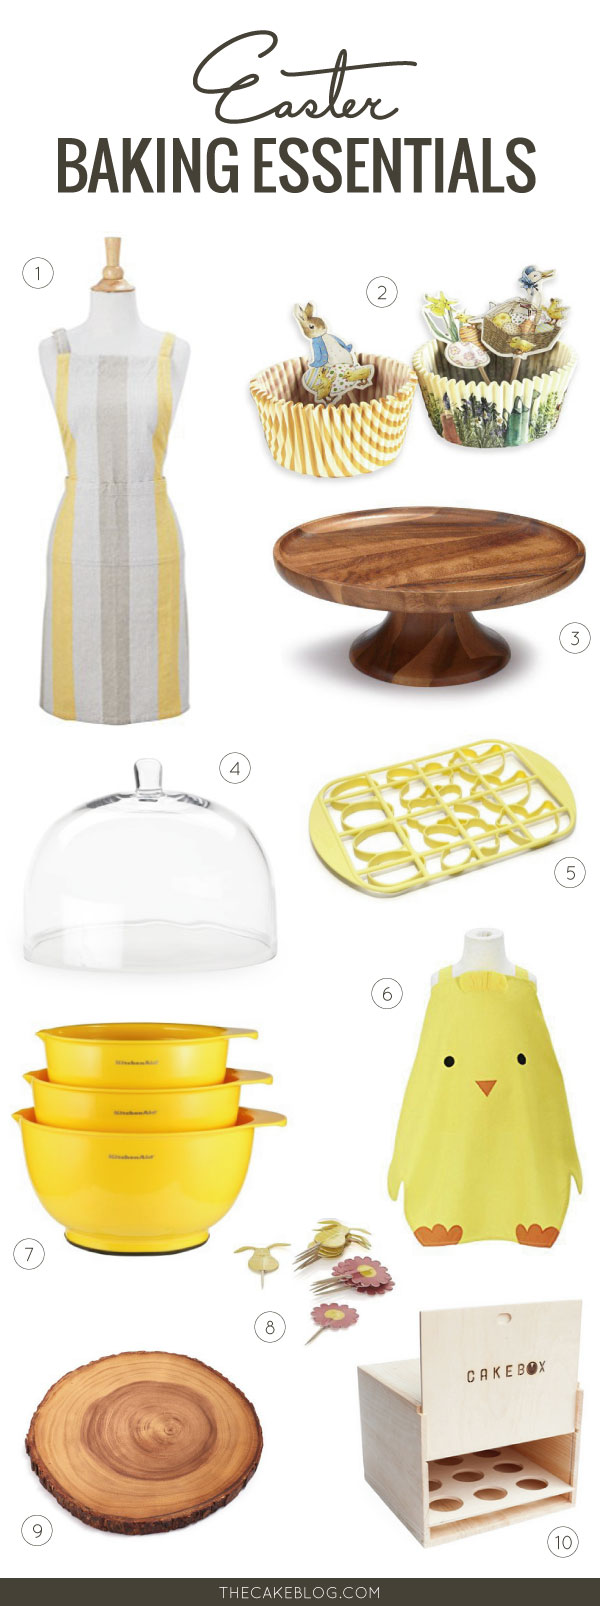 Baking Supplies for Spring & Easter Entertaining | on TheCakeBlog.com